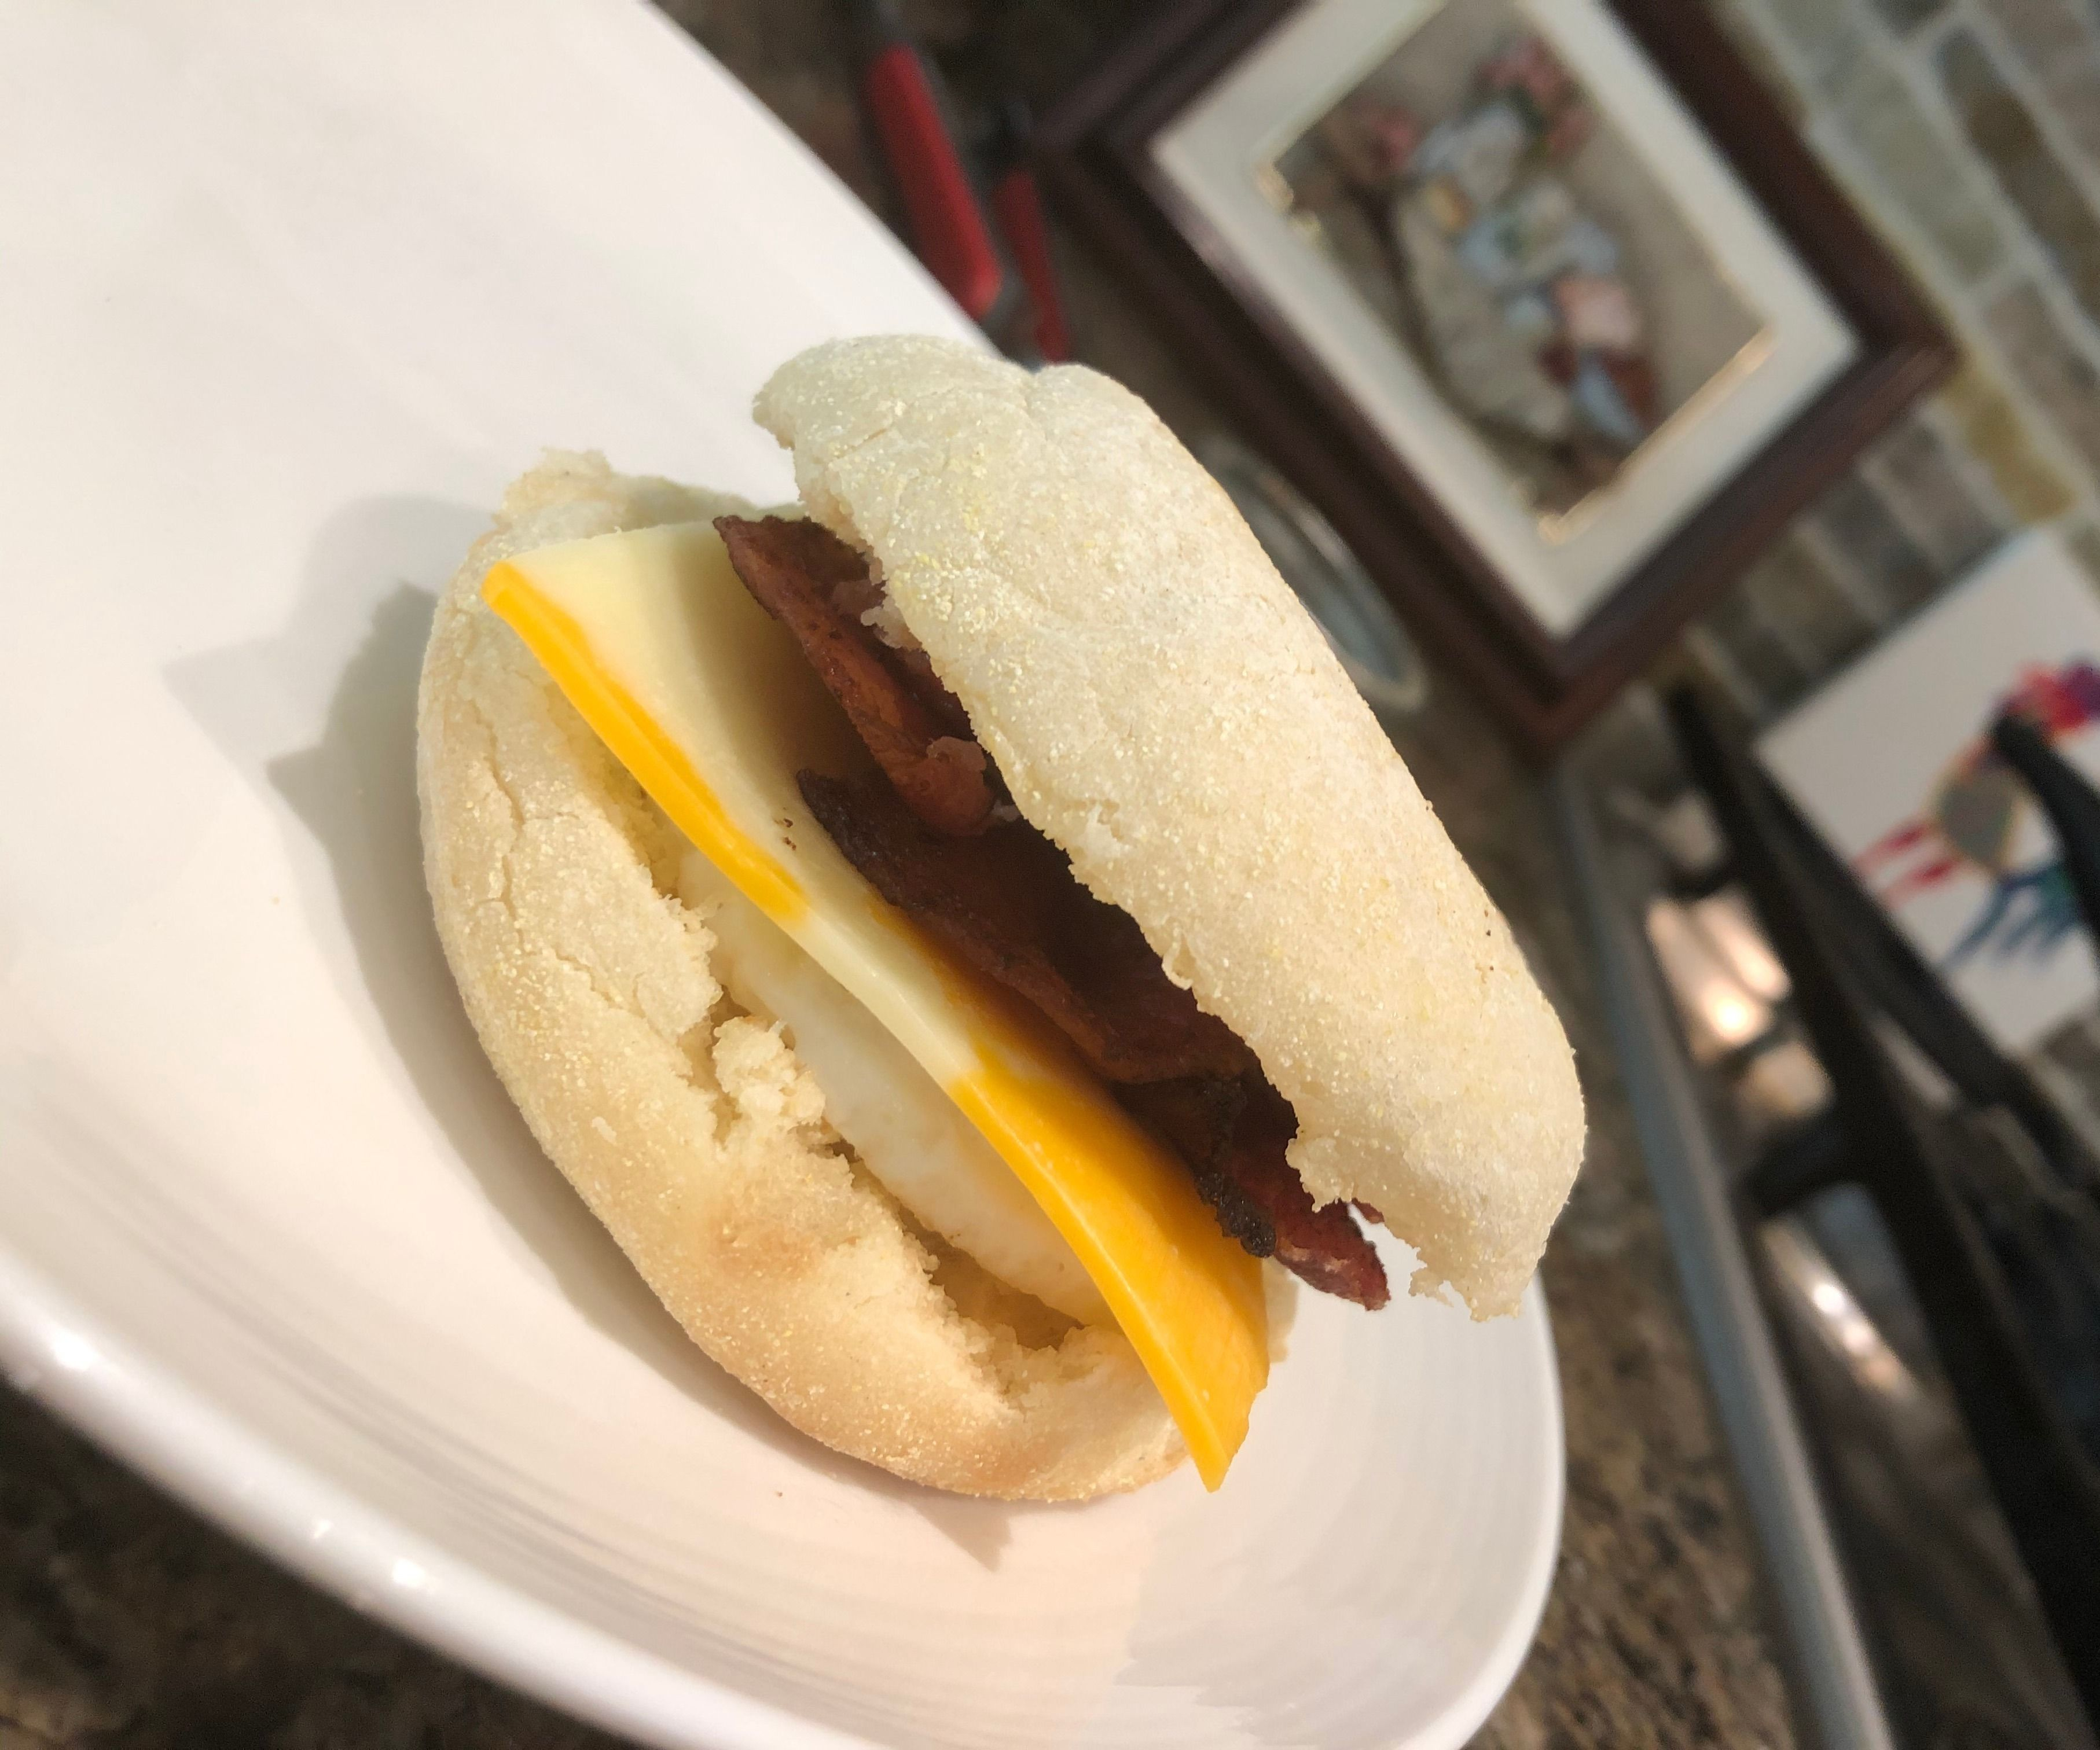 Breakfast Sandwich: 5 Easy Steps to Make a Great Breakfast